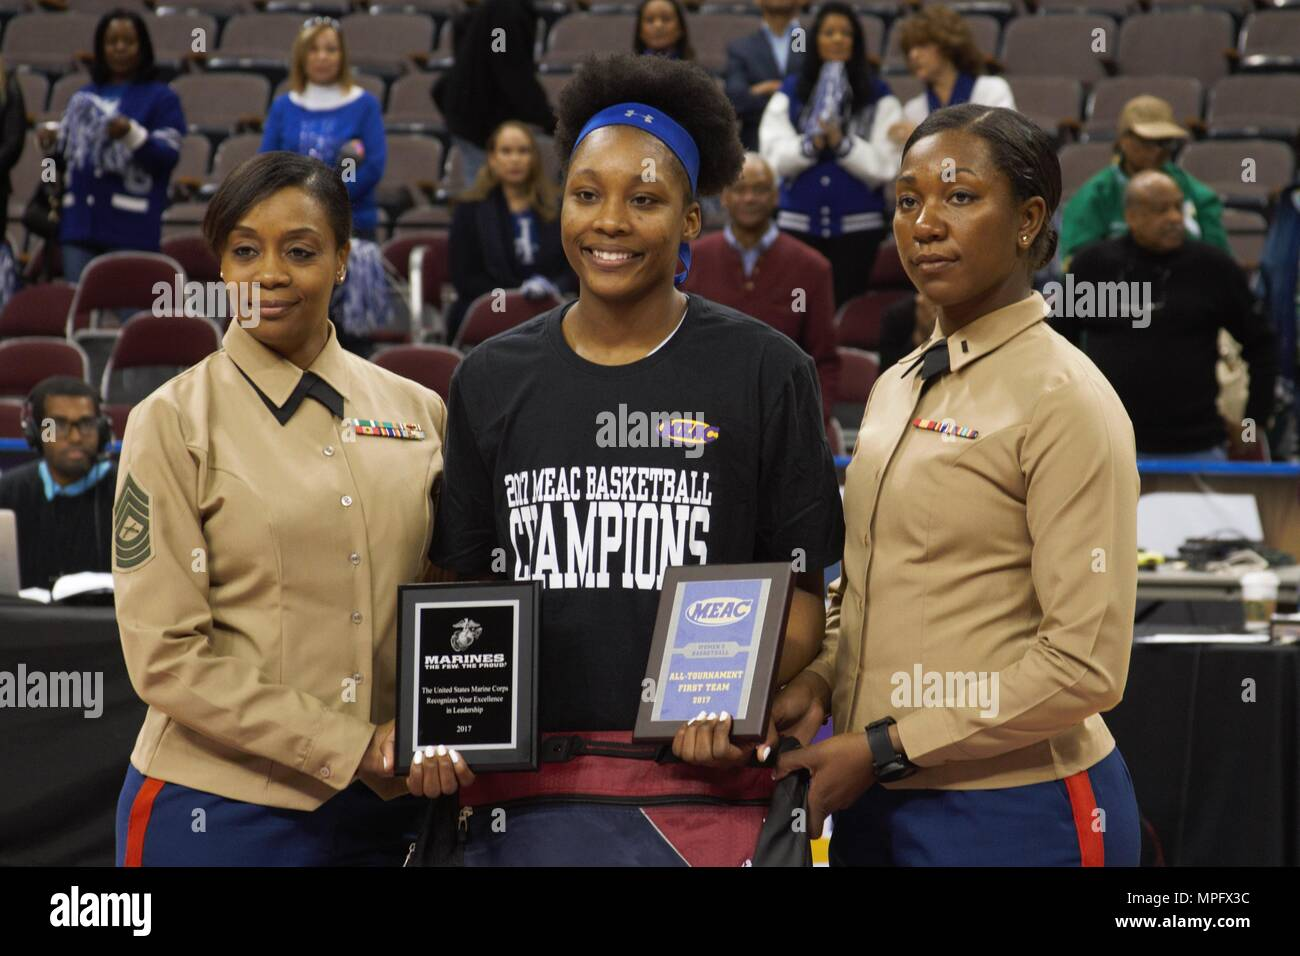 Marines pose for a picture with Monnazjea Finney-Smith of Hampton at the Scope Arena in Norfolk, Va., March 3, 2017. The Pirates won the MEAC tournament and earned an automatic bid into the NCAA tournament. The Marine Corps is proud to recognize and celebrate those young people who display the qualities of a leader through their commitment to hard work in school, as well as in their extracurricular activities. Stock Photo